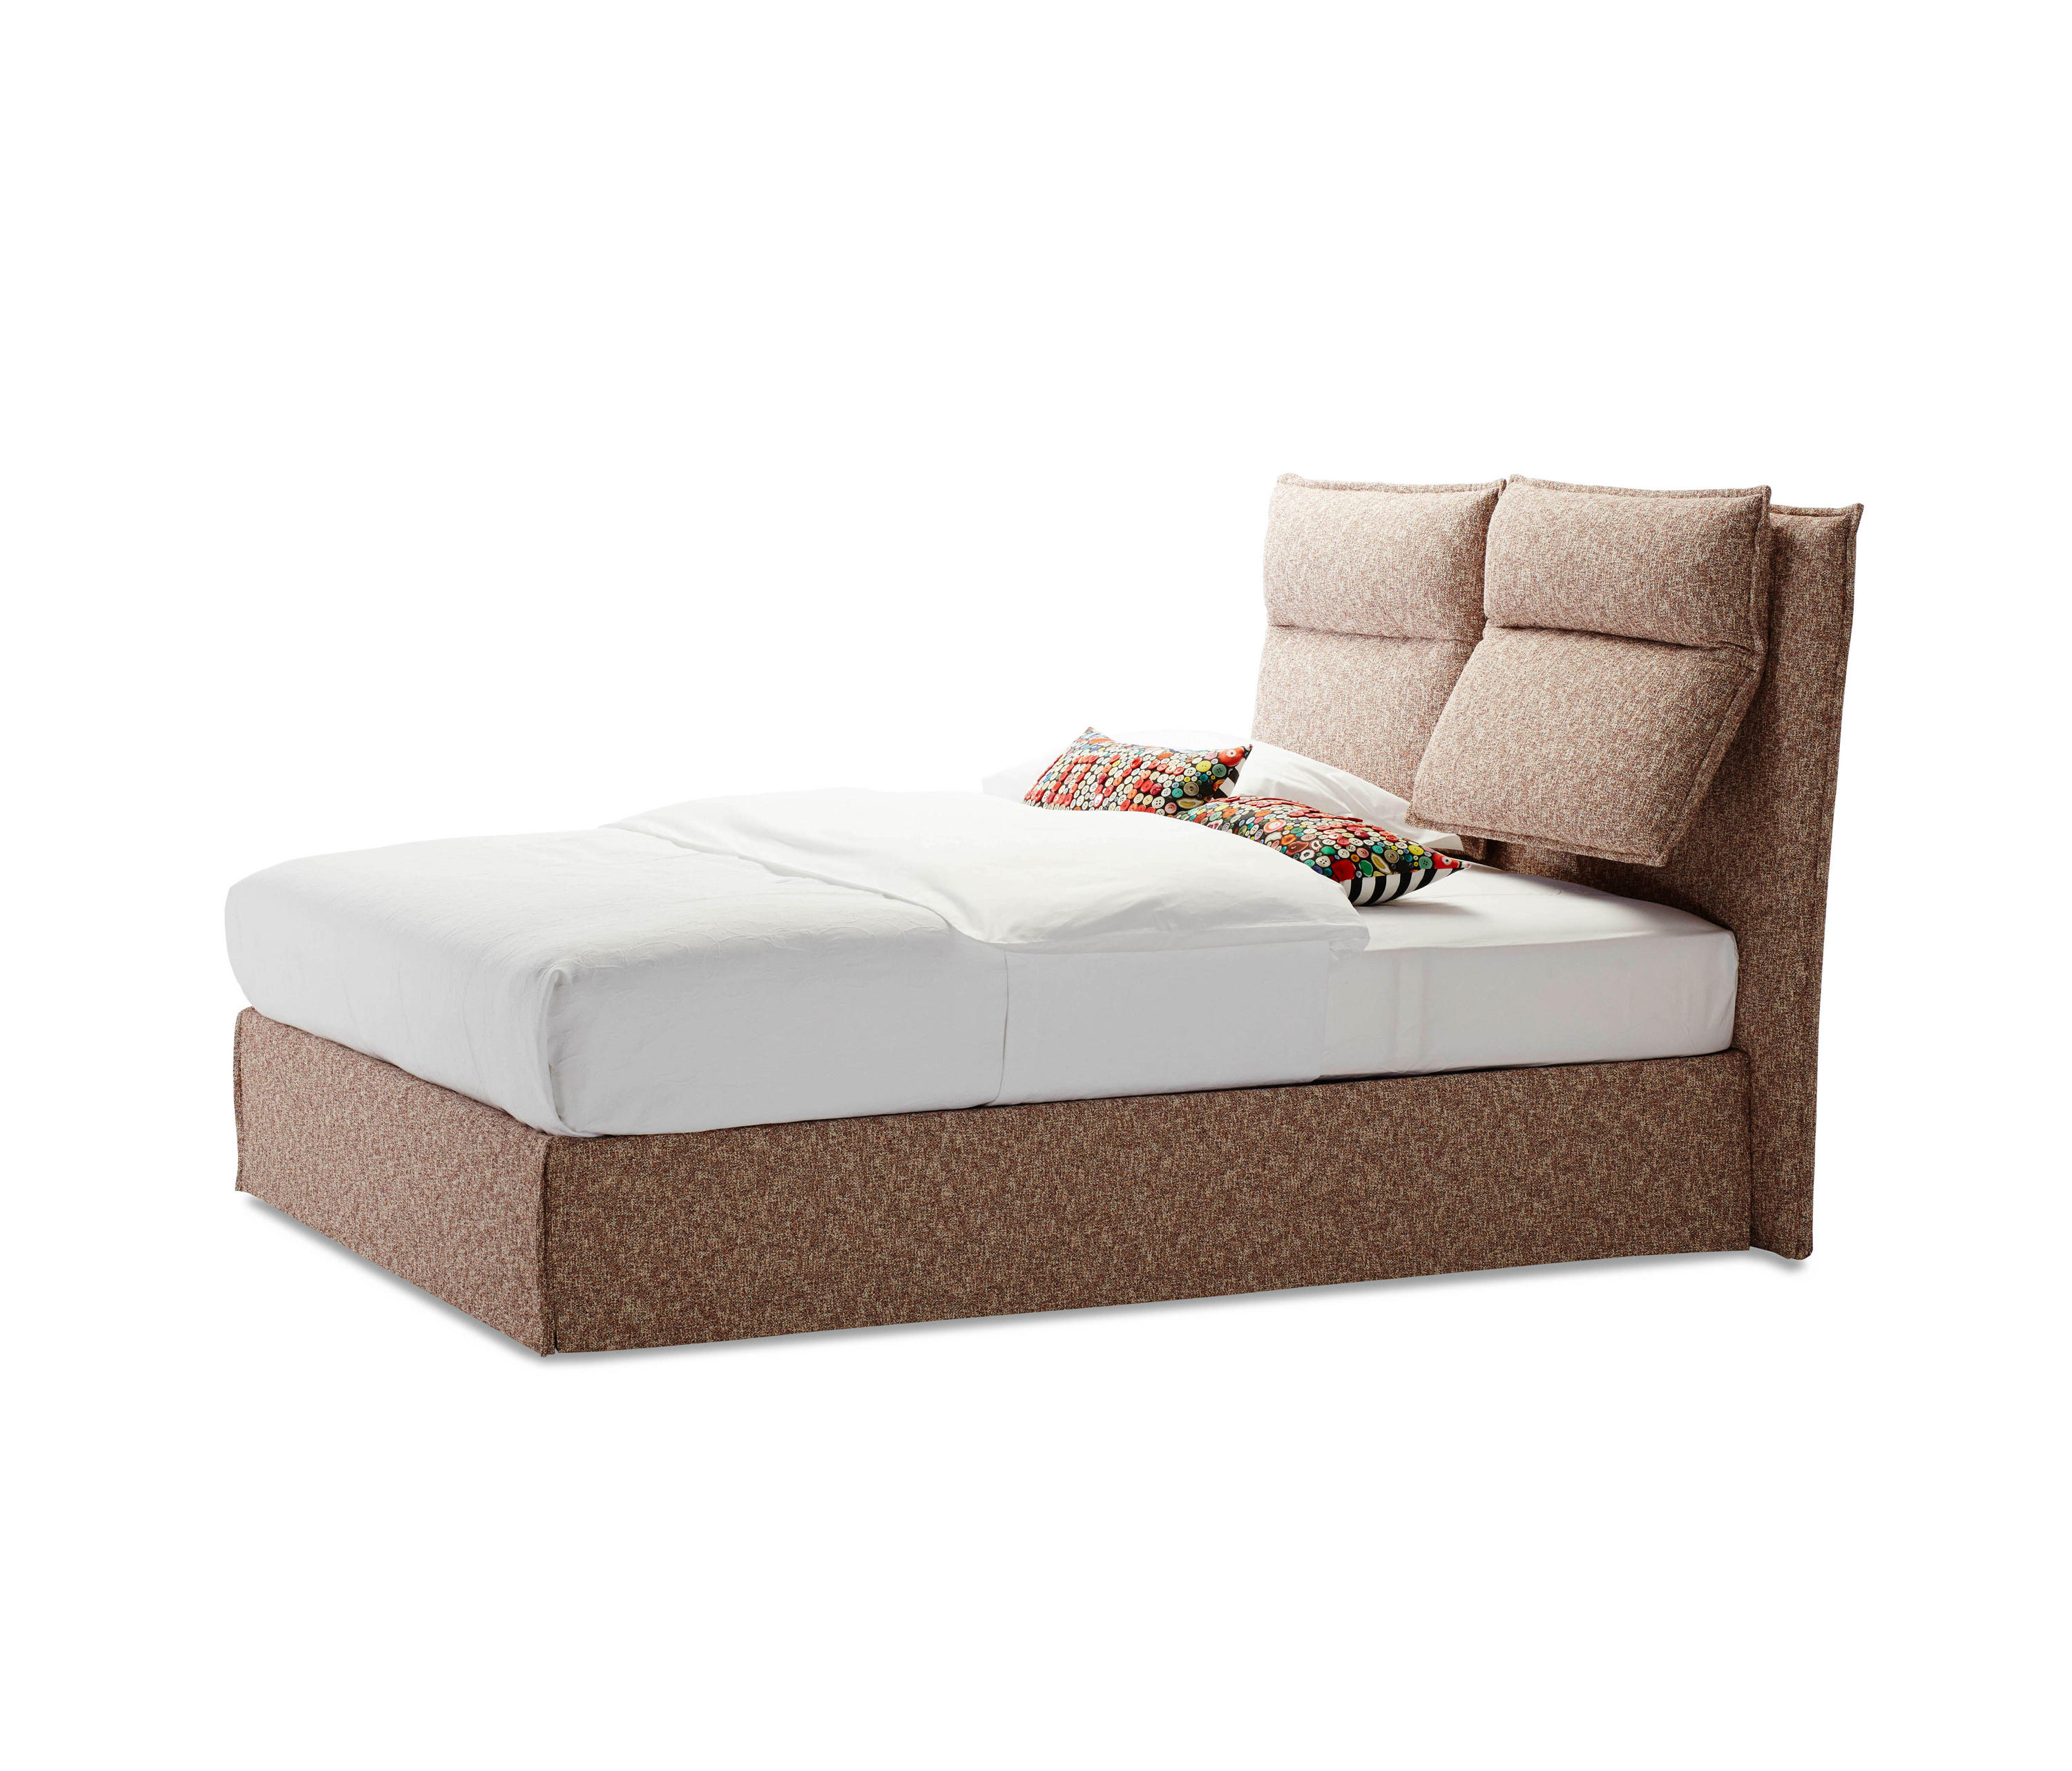 Wave chaise bed price - Fold Double Beds Schramm